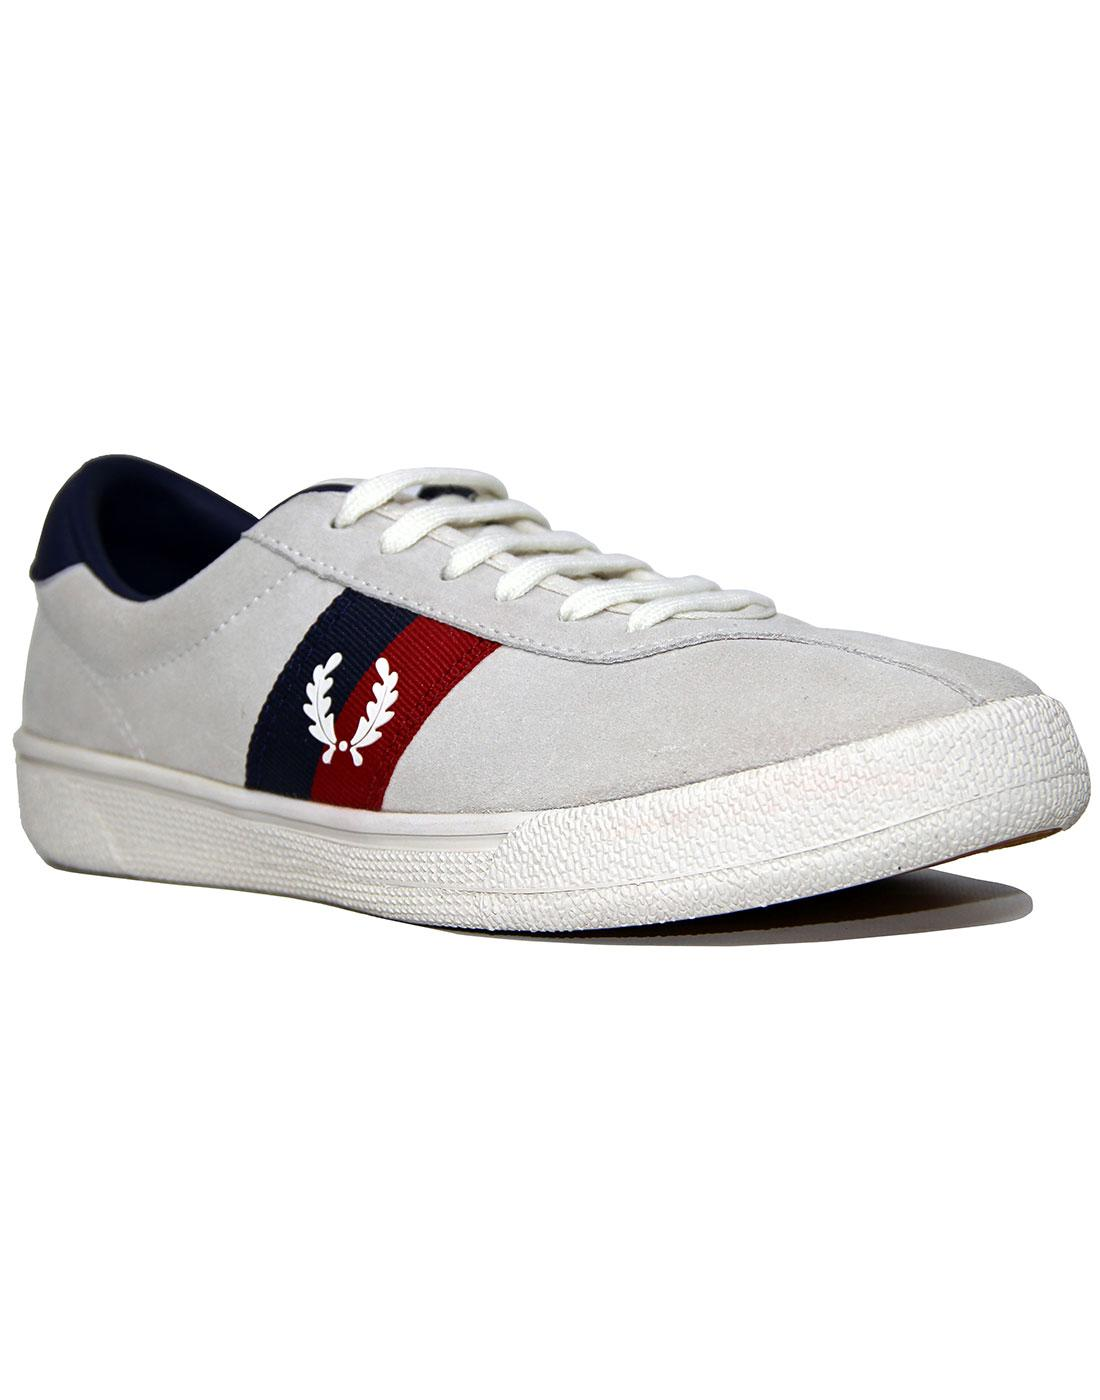 FRED PERRY B108 Tennis Shoe Suede Snow White